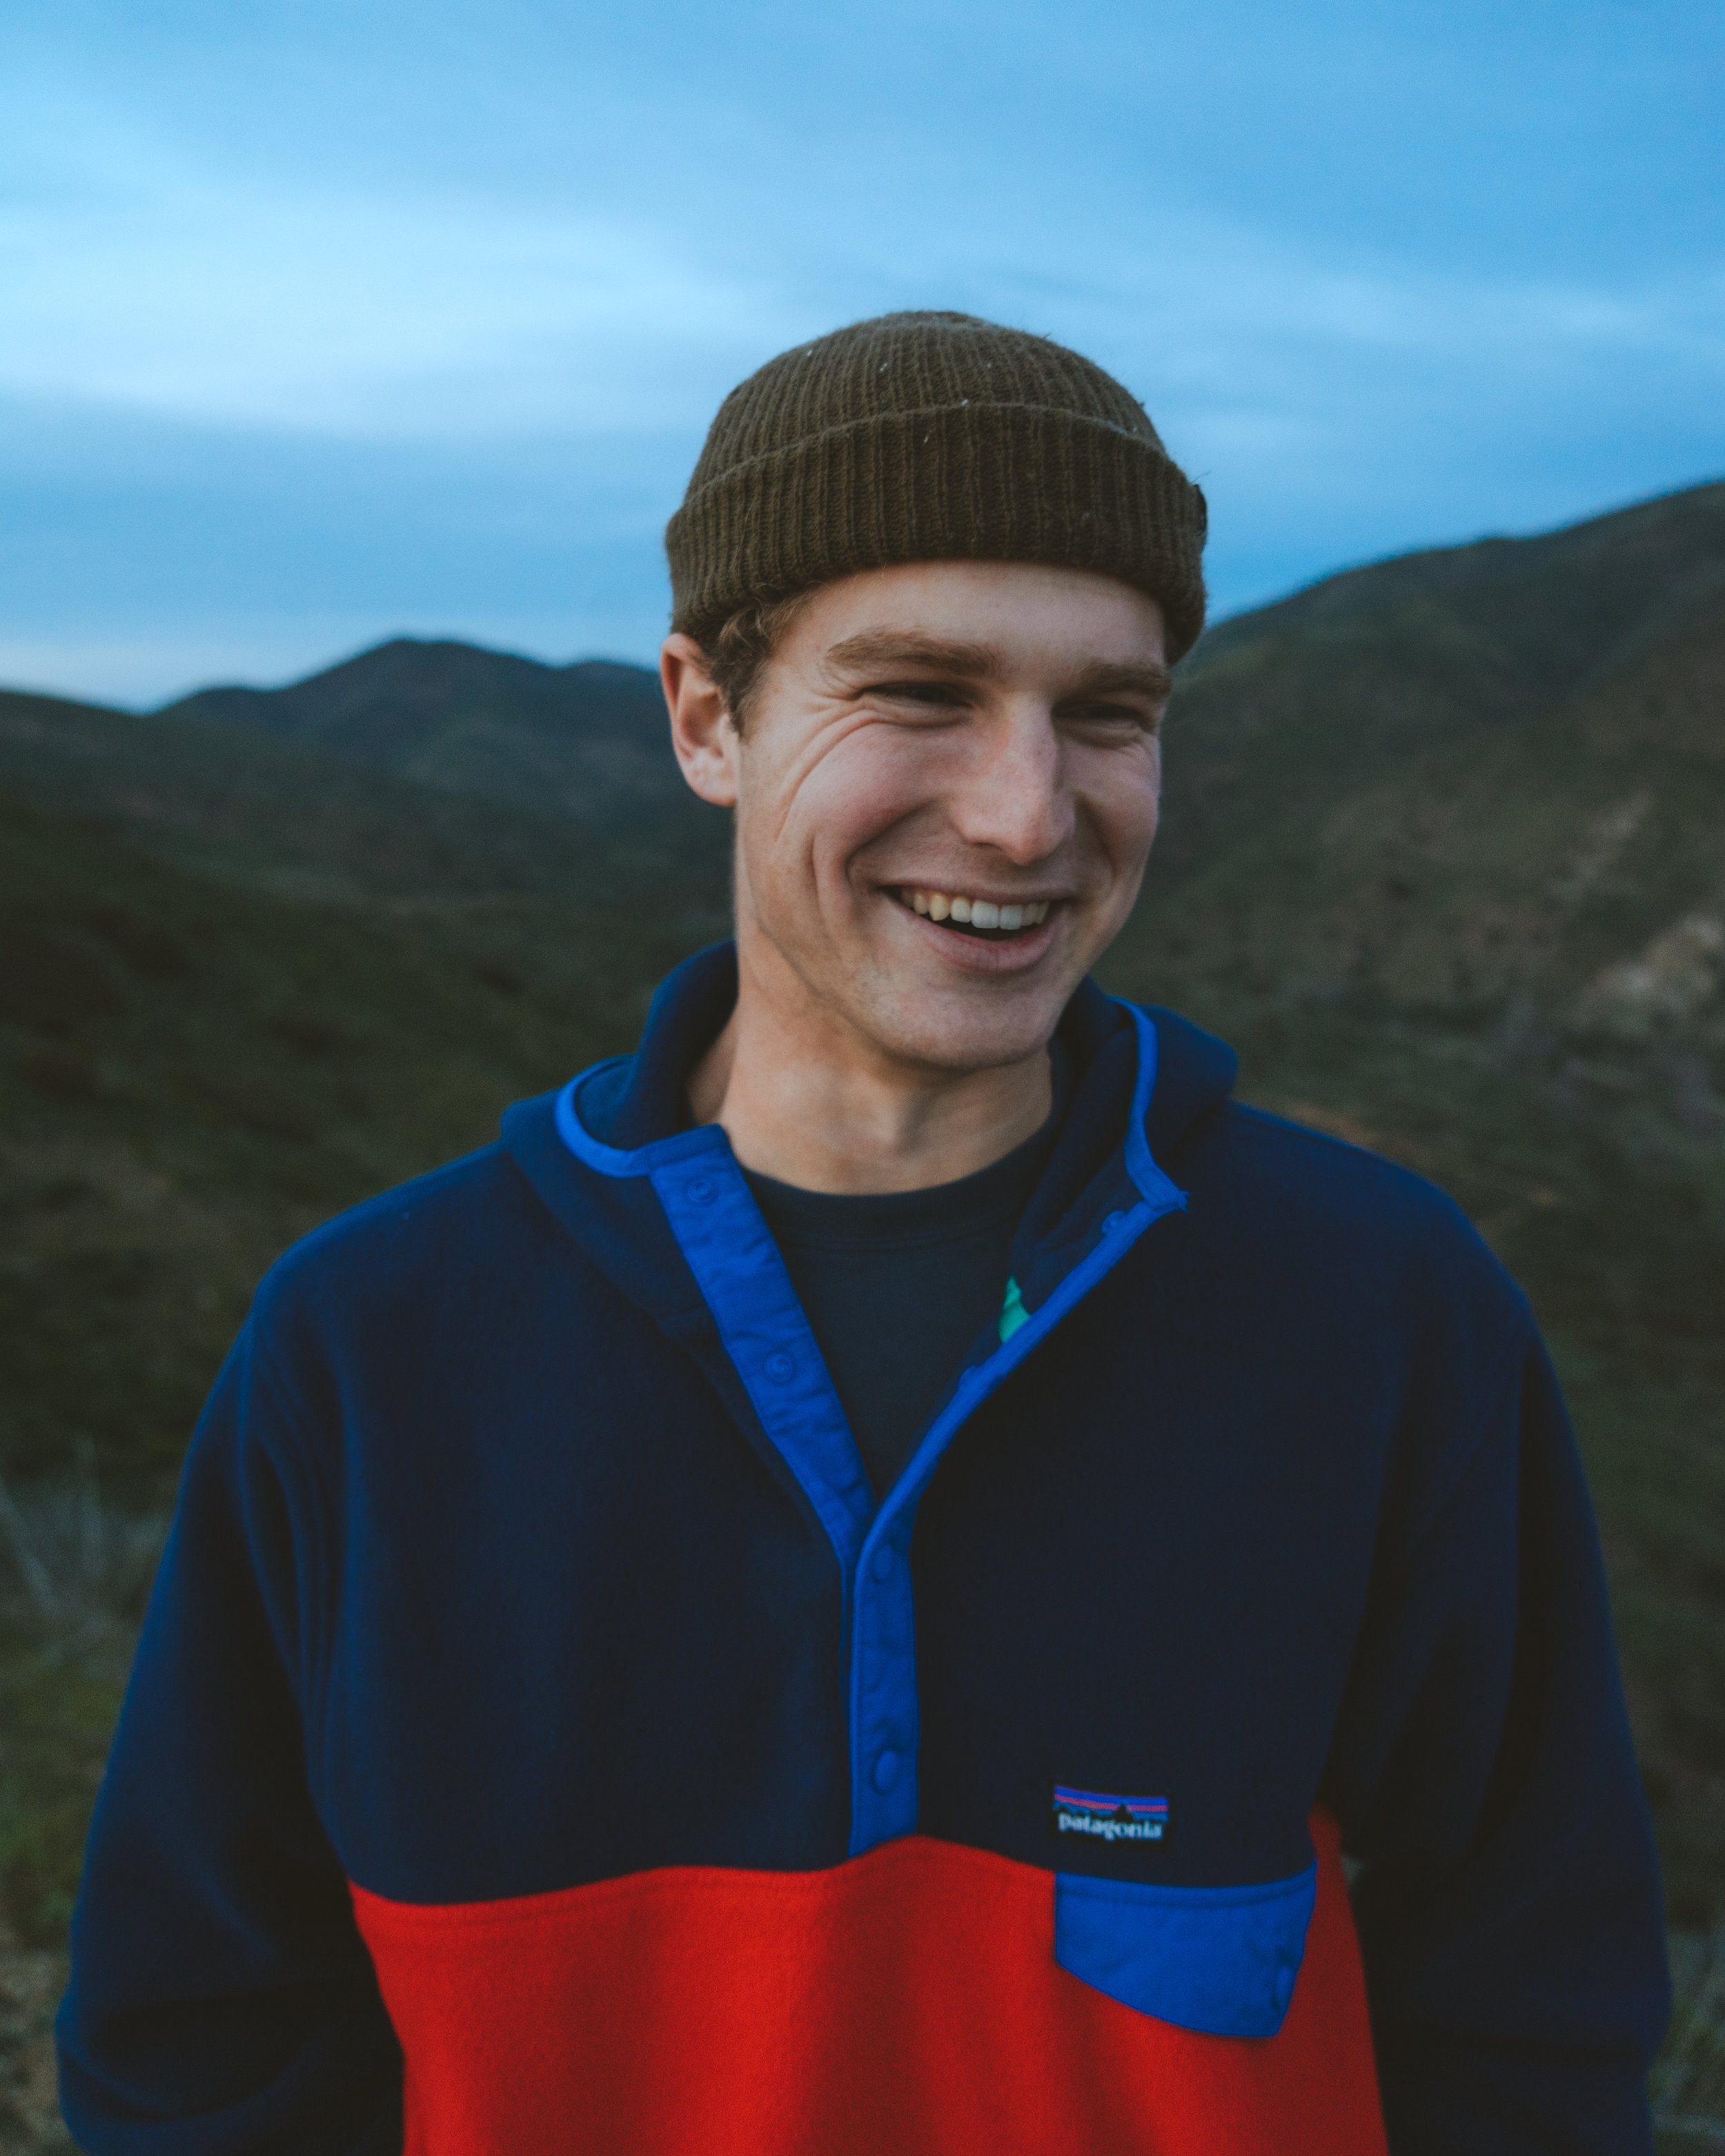 Chris Meugniot - Born and raised in Ventura, California Chris was never fond of the outdoors until he picked up a camera. Since then he has worked to capture authentic moments between people and nature.